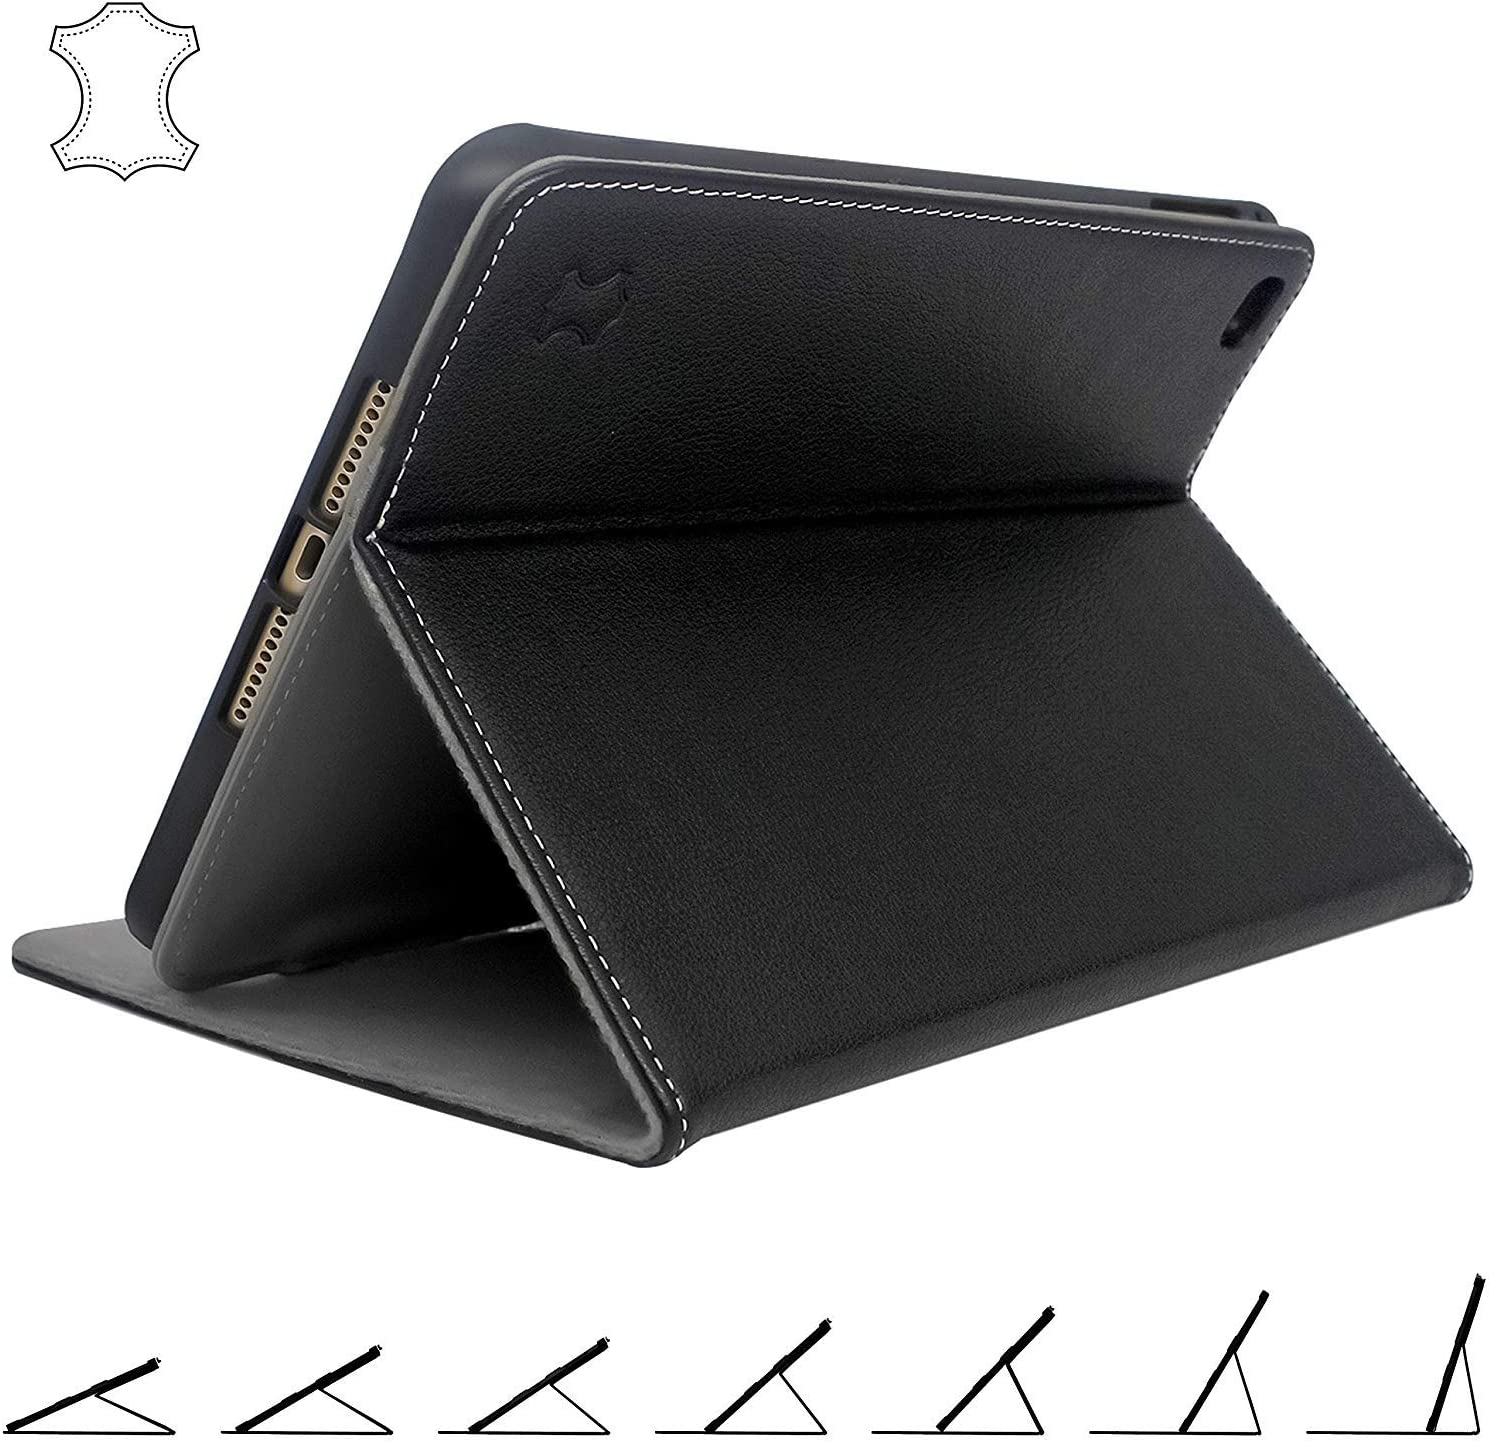 iPad Mini 5 Case 2019 Leather with Pencil Holder - Best Multi-Angle Stand for 5th Generation Apple Mini